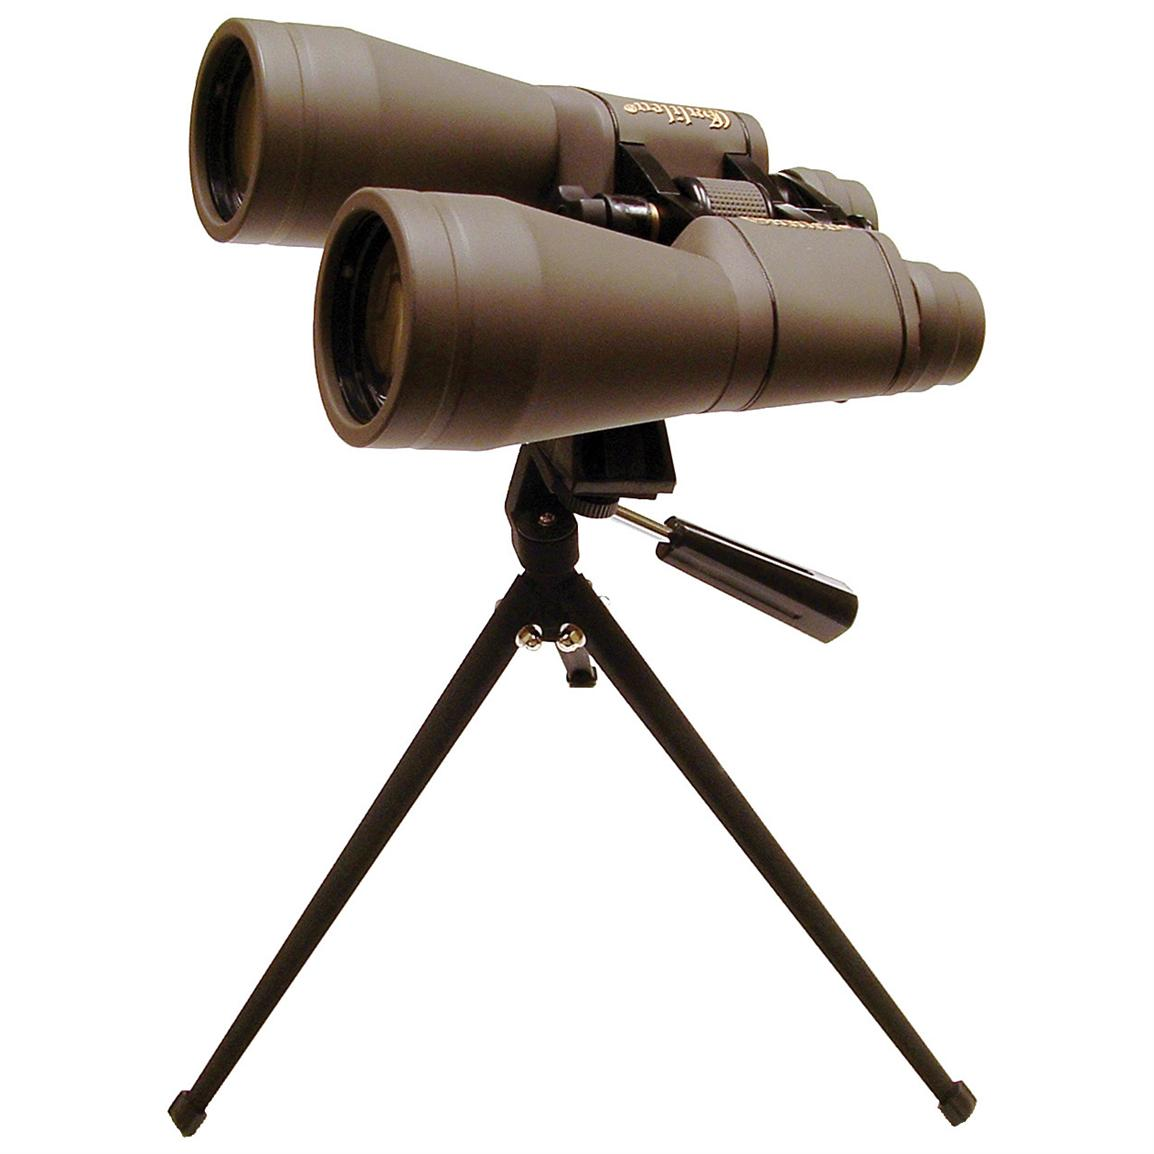 Galileo® 10-30x60 mm Zoom Binoculars with Tripod